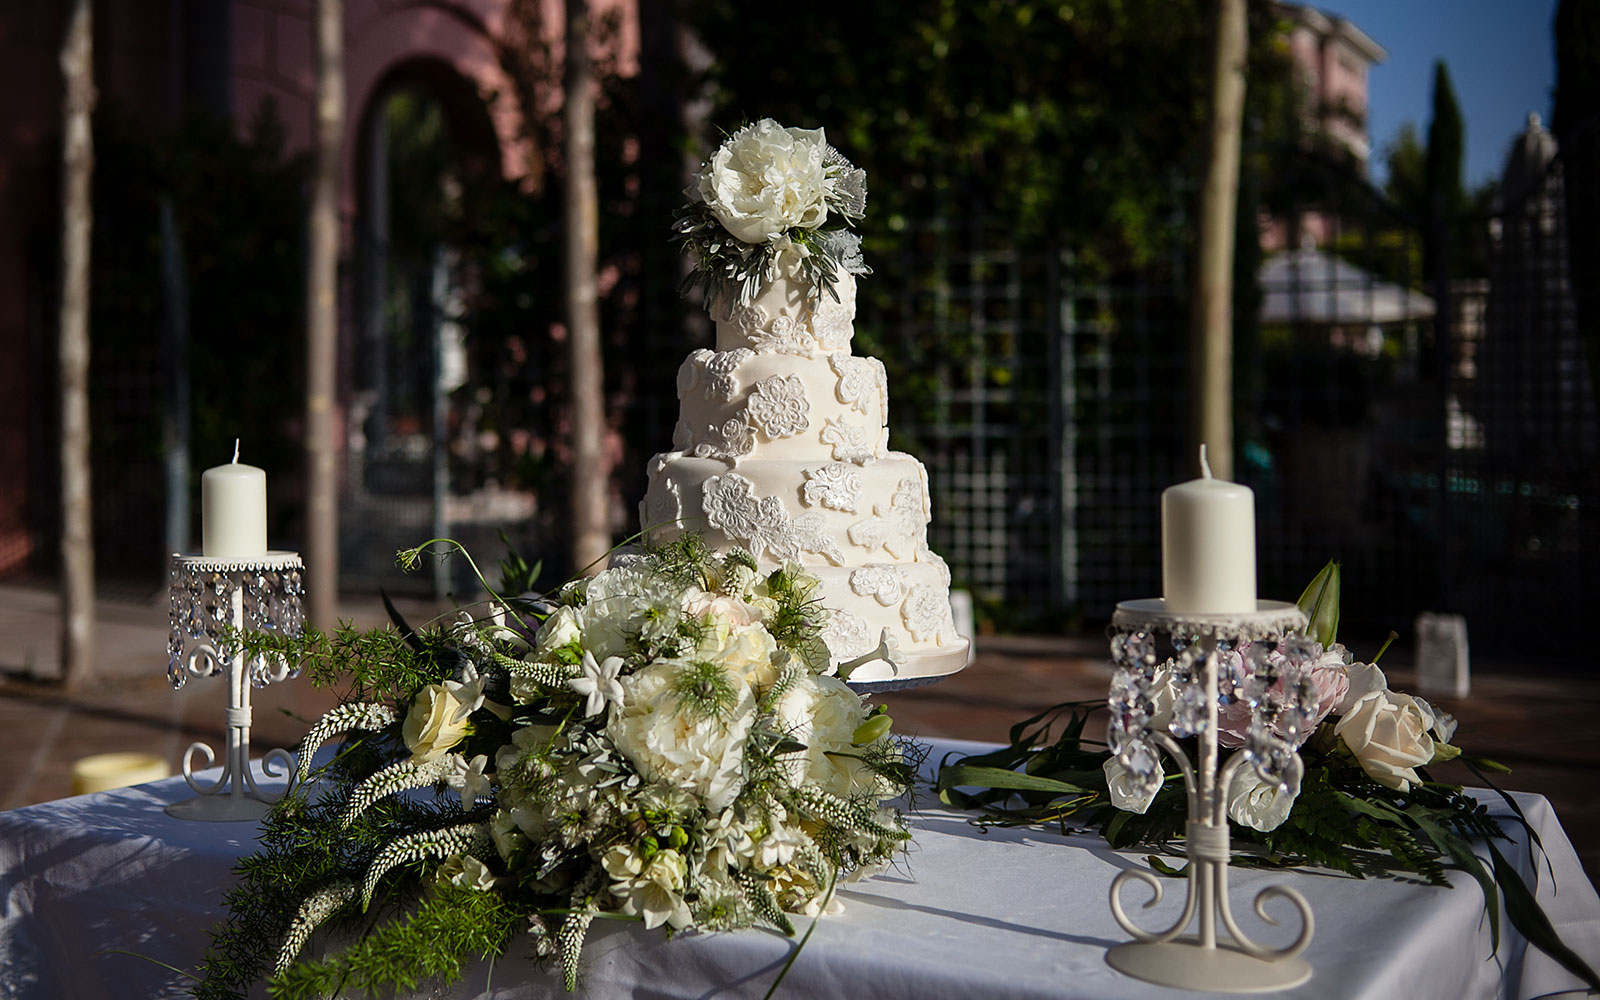 wedding-cake-flowers-photo-marbella-villa-padierna